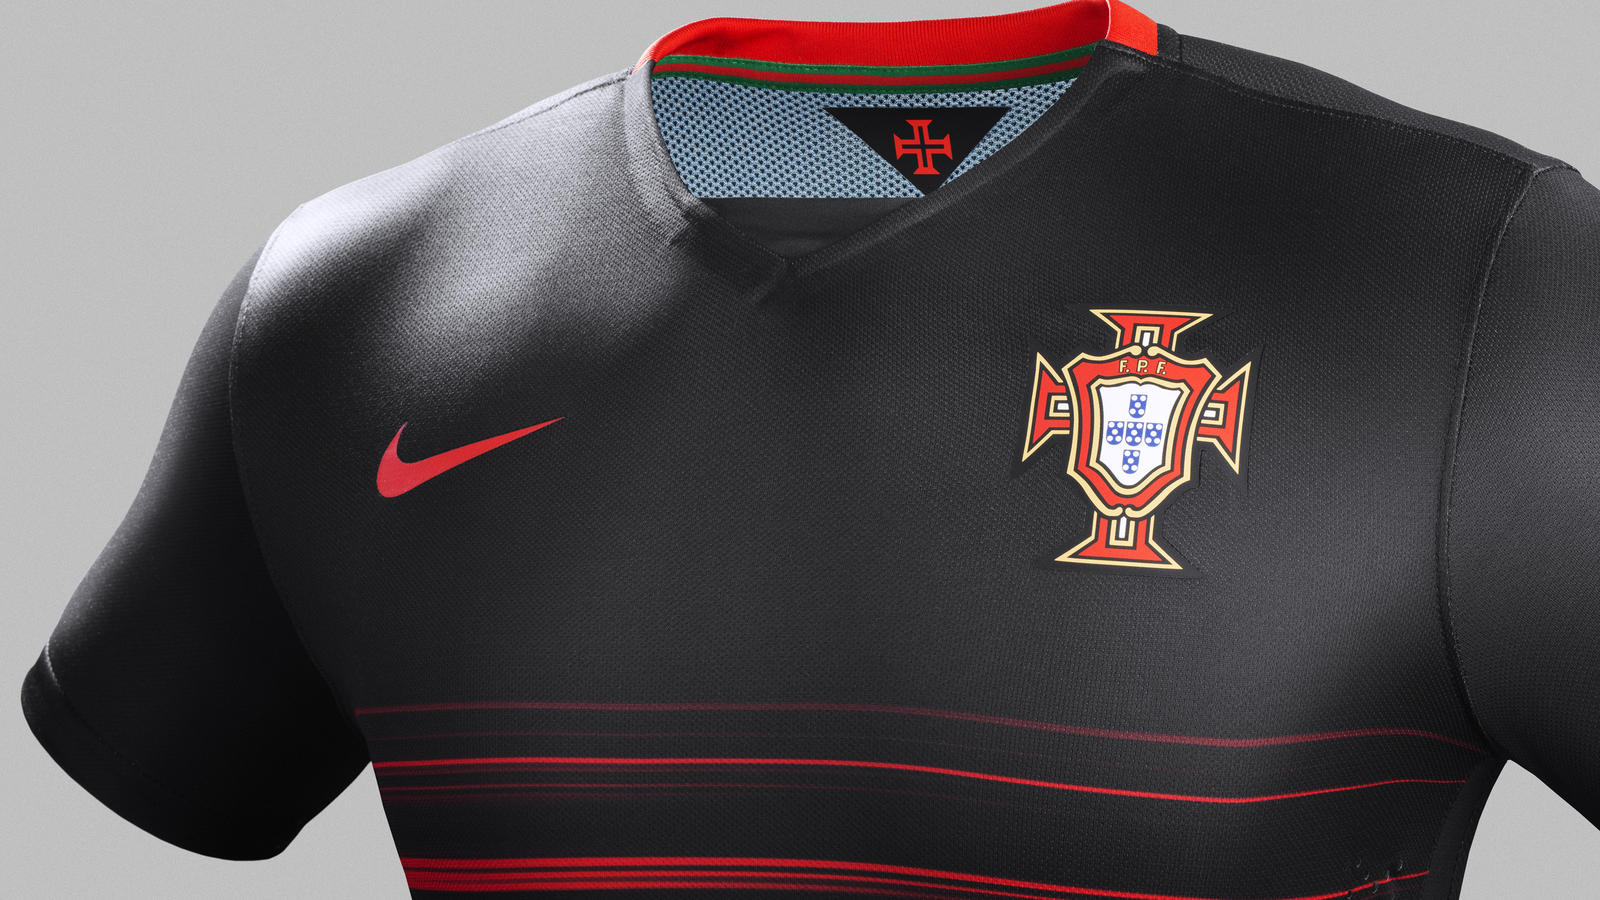 new arrivals 15dcd 4af9c Portugal National Football Team's Skill and Flair Inspire ...